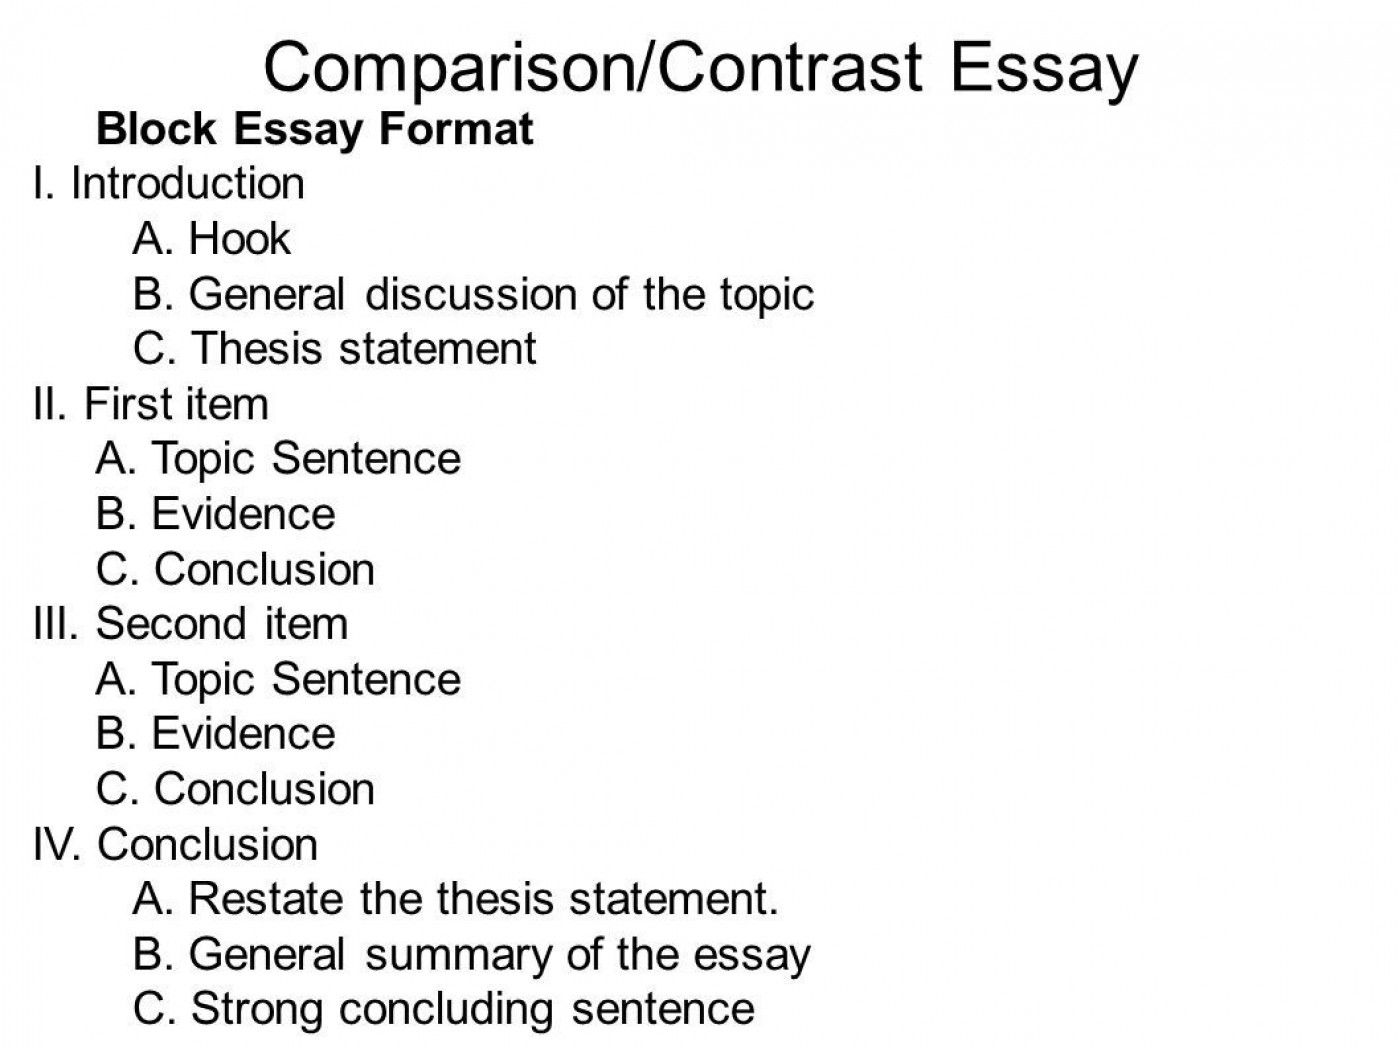 008 Writing Compare And Contrast Essay Example Magnificent A Mla Format Ppt Of Comparison Pdf 1400